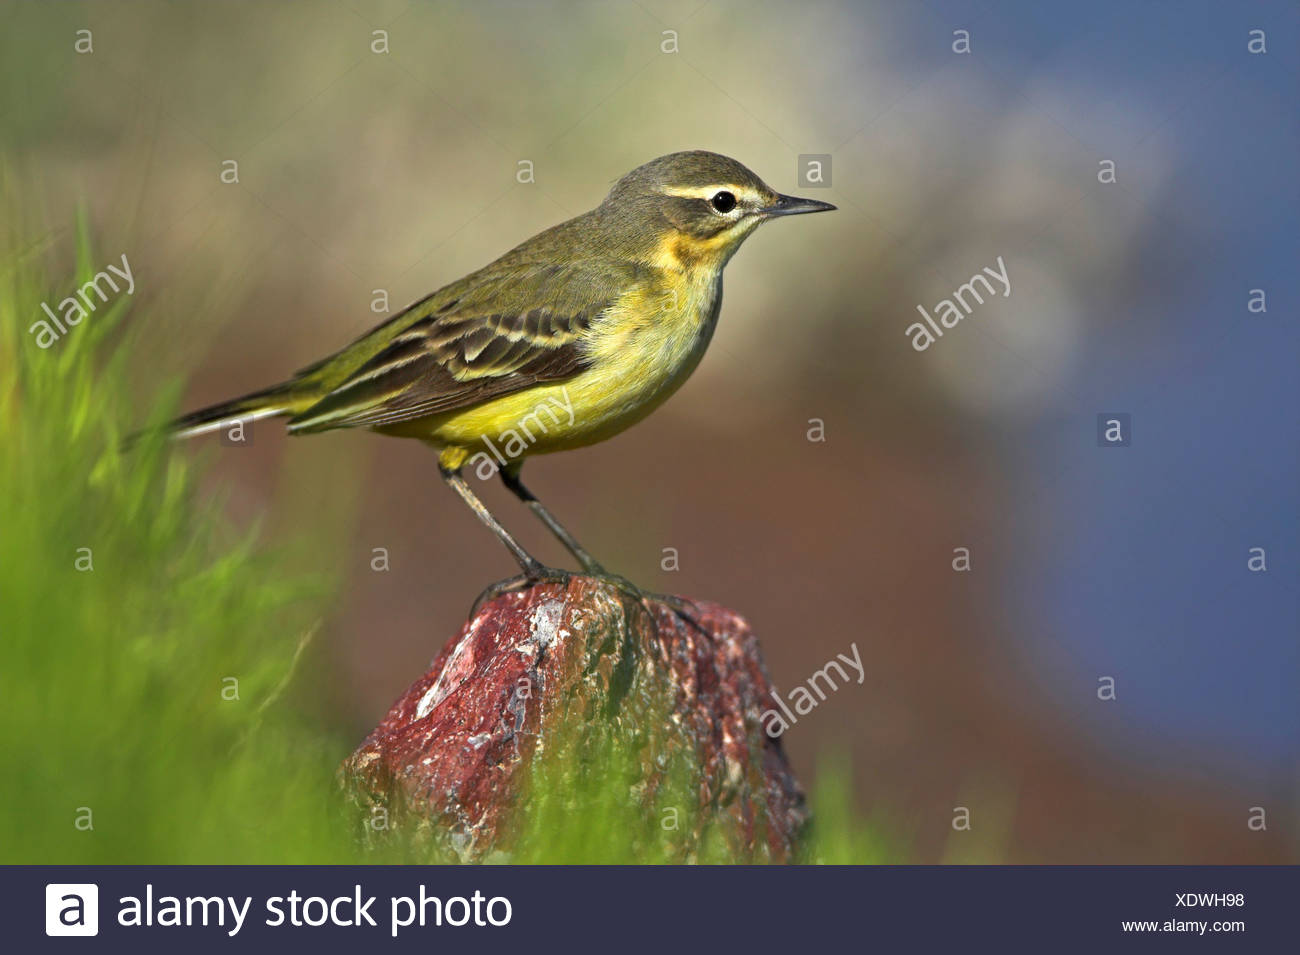 Blue-headed Wagtail, Yellow Wagtail (Motacilla flava flava), sitting on a stone, Greece, Lesbos - Stock Image